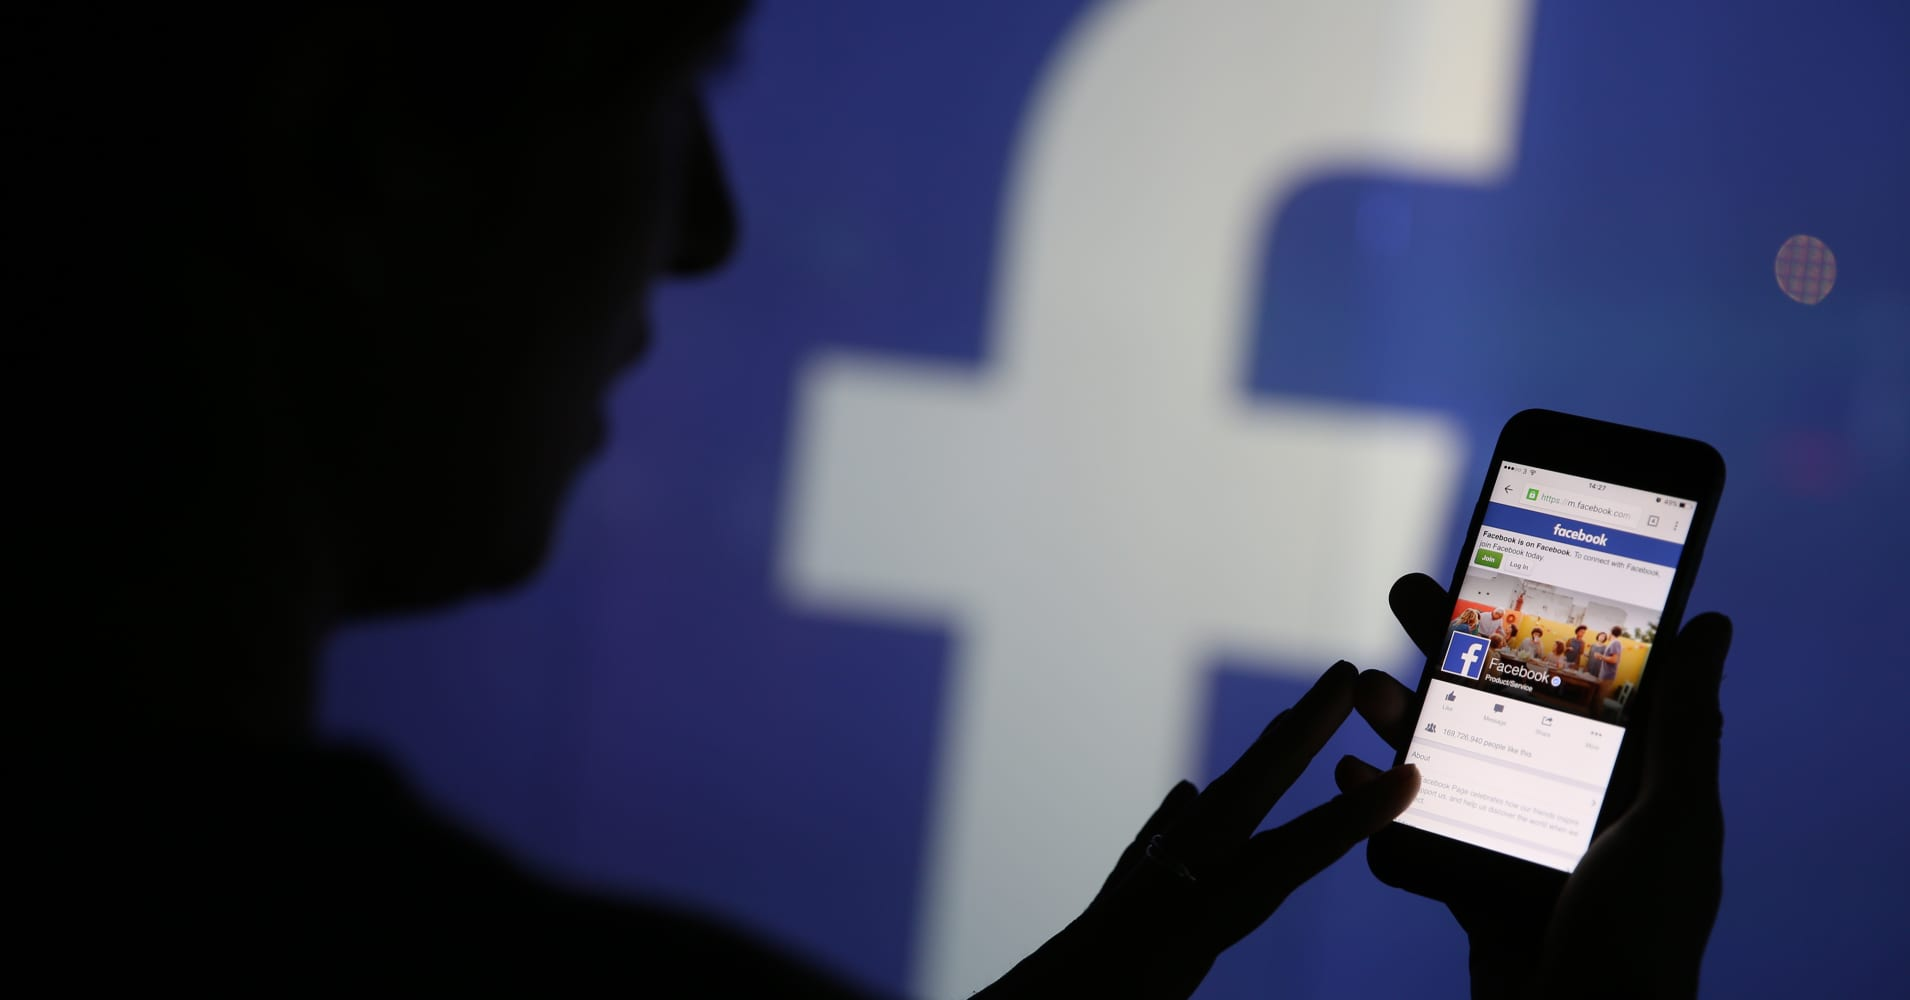 Facebook: Mosque shootings video viewed 4,000 times before removal